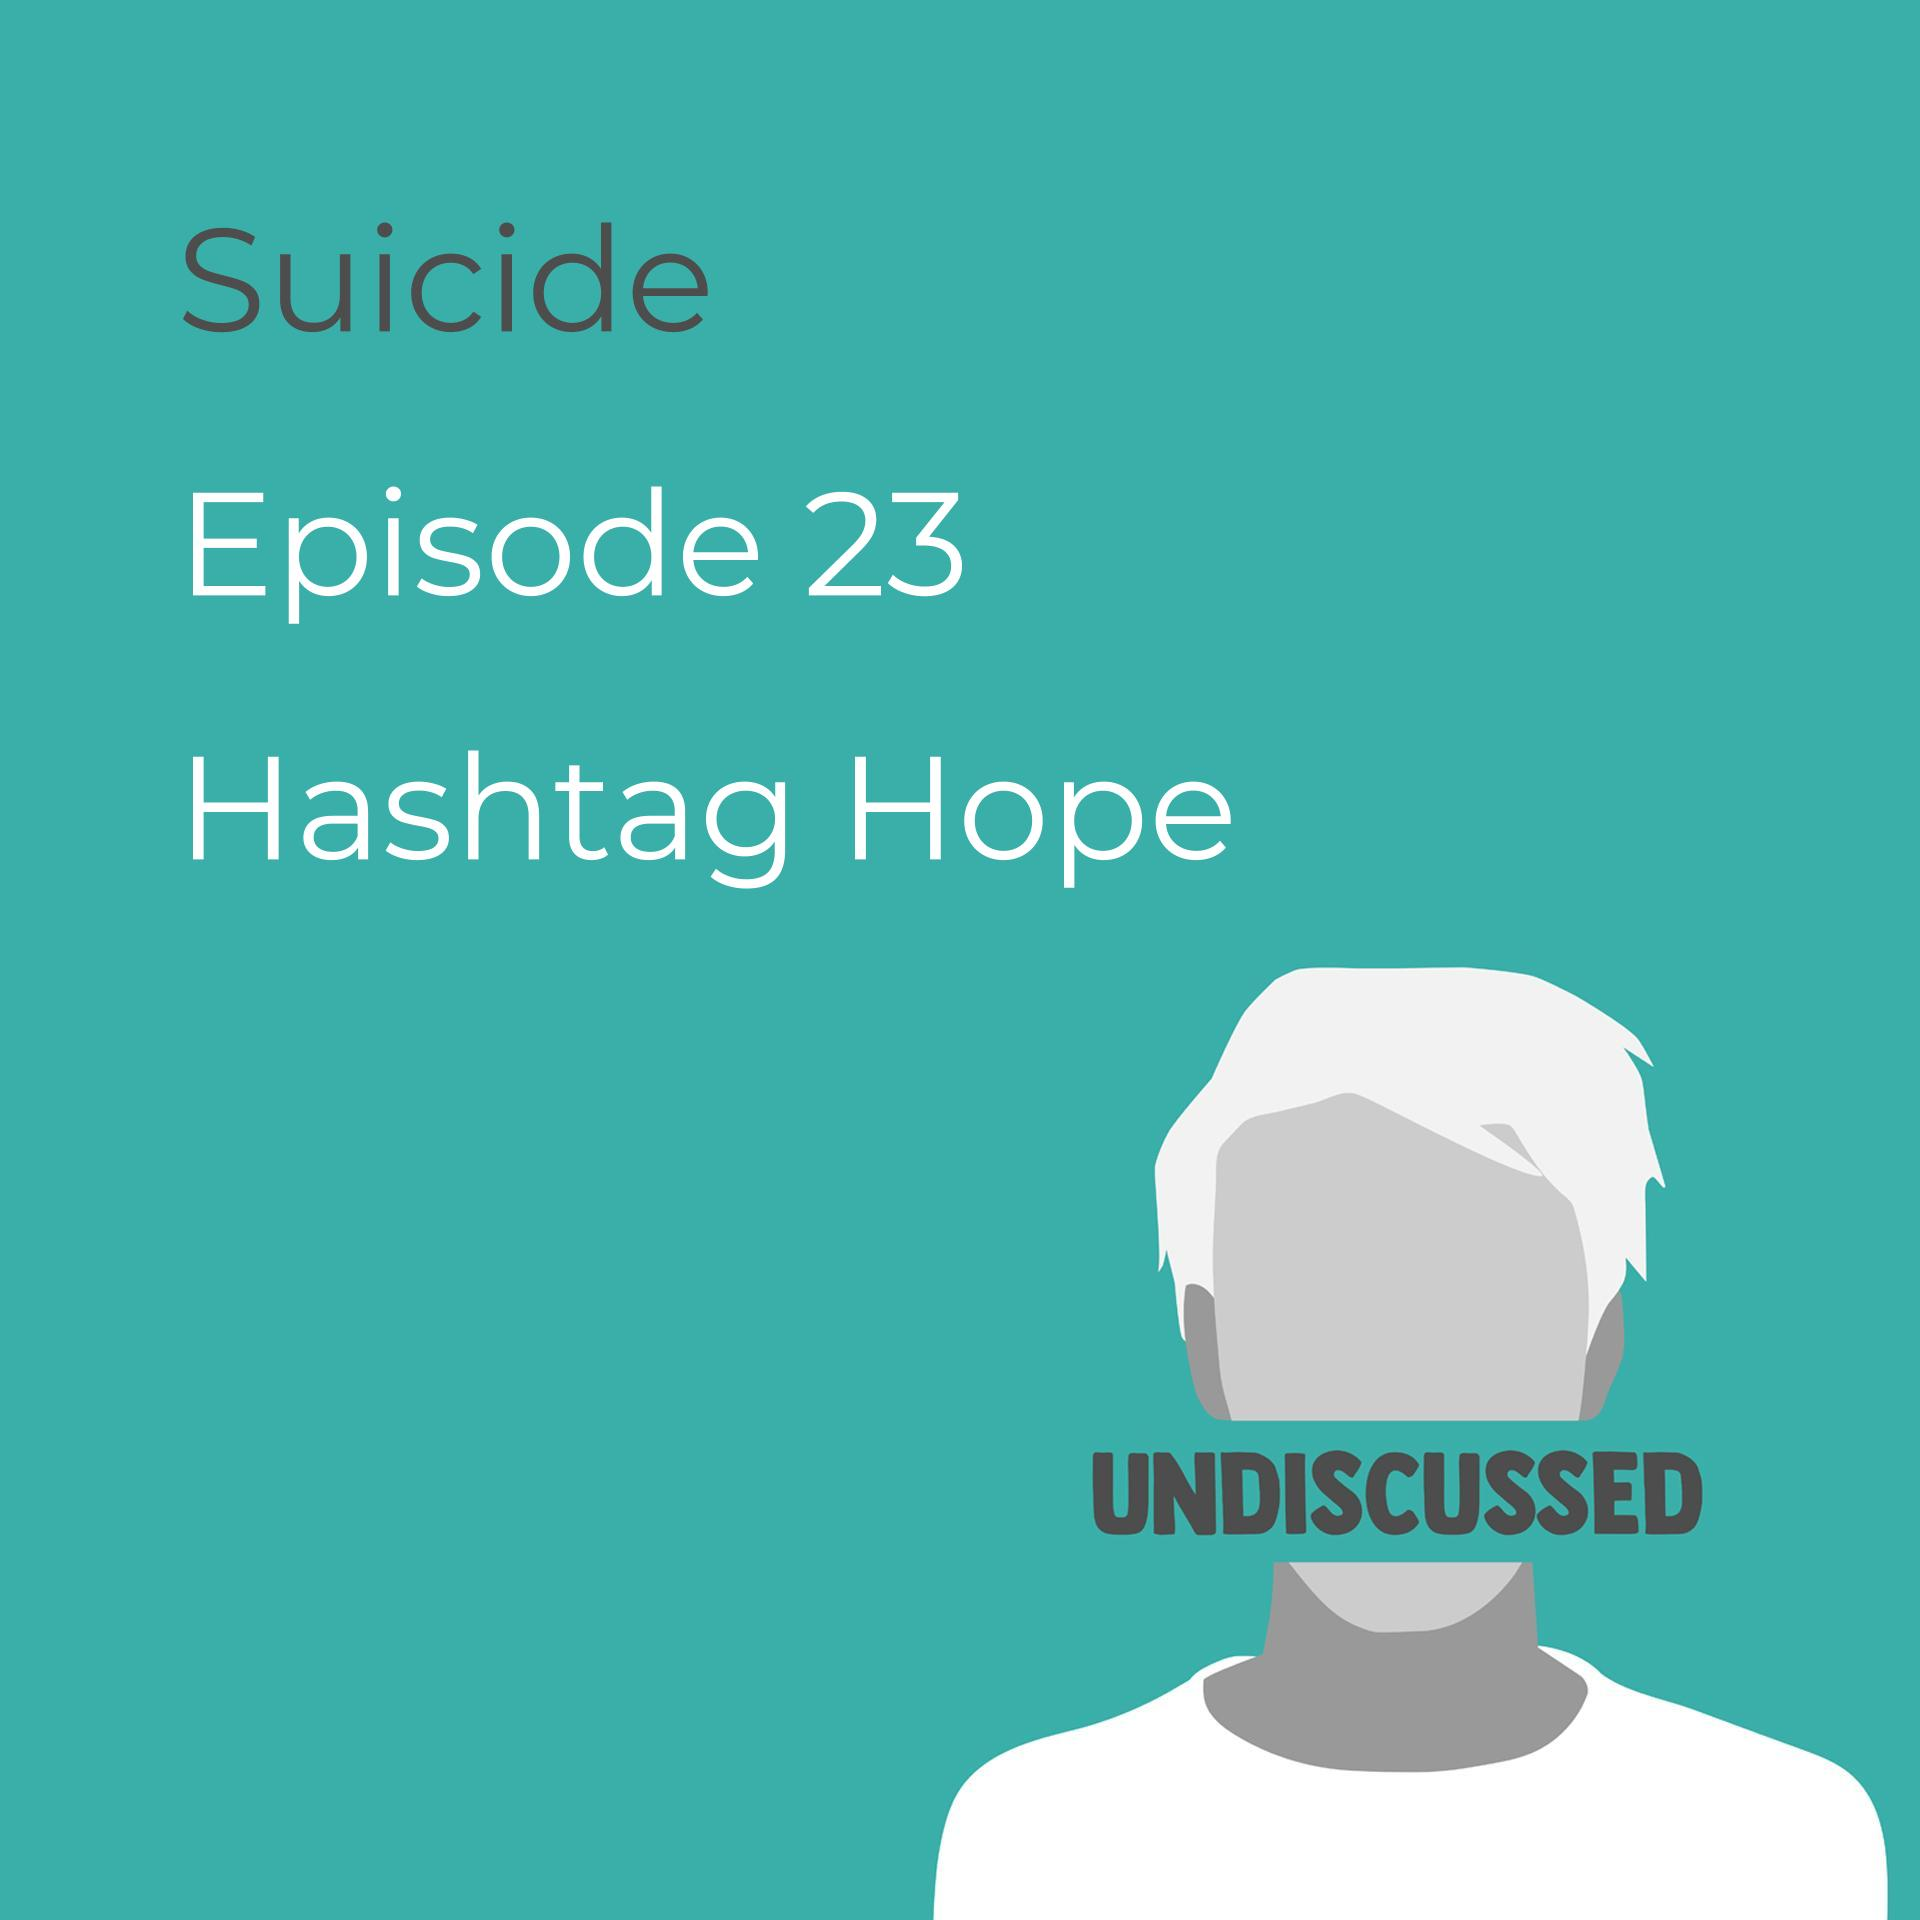 Episode 23 - Suicide with Hashtag Hope